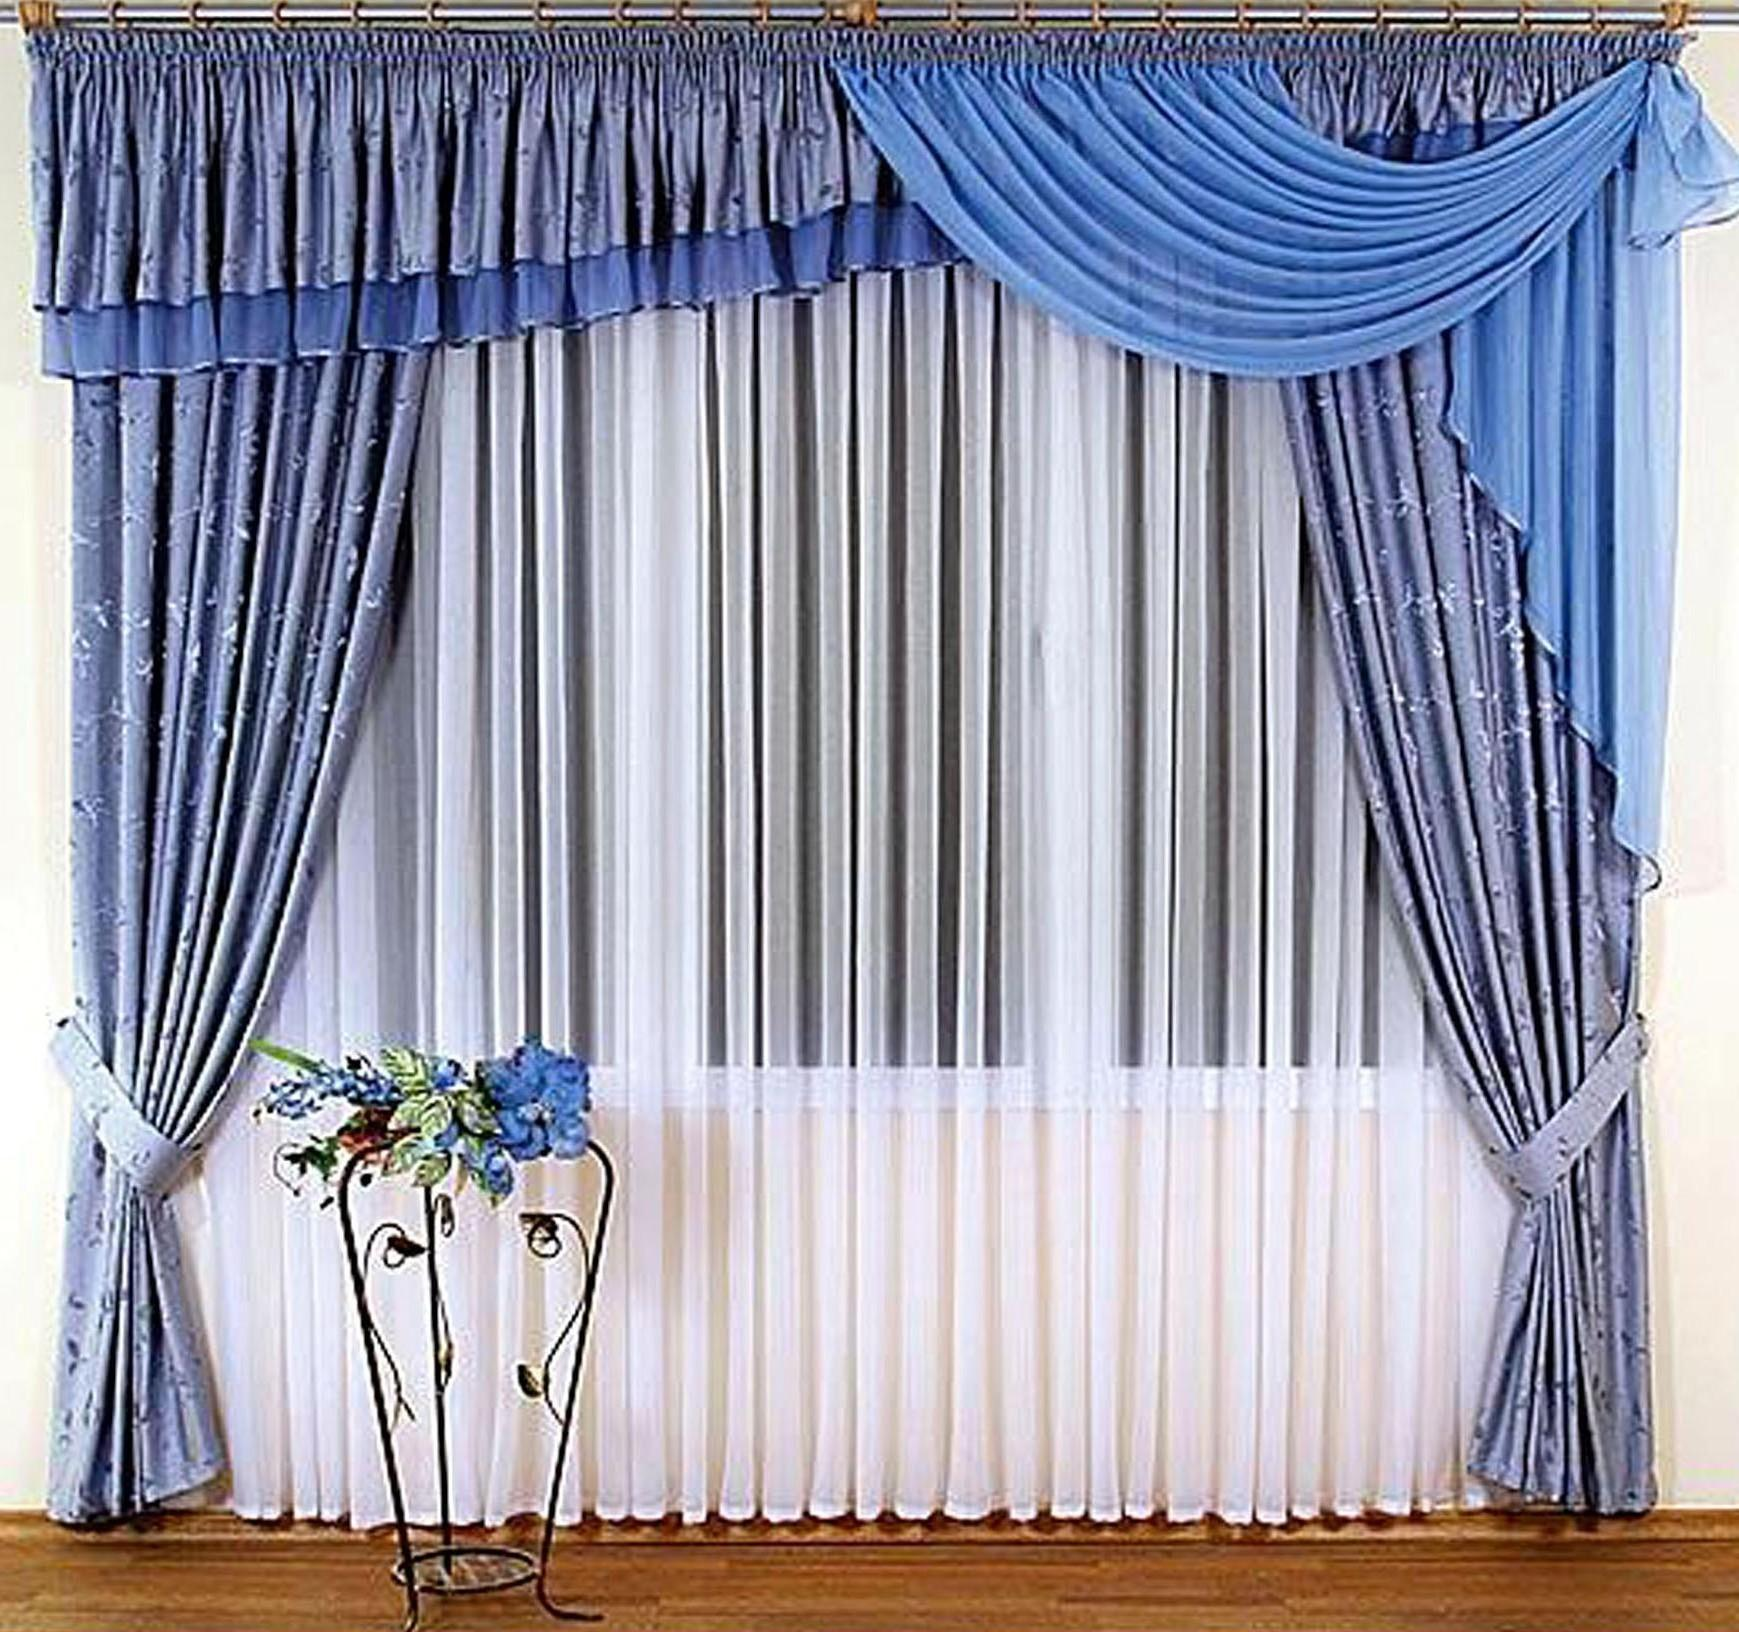 Curtain Design 2016 Special Your Home Angel Advice